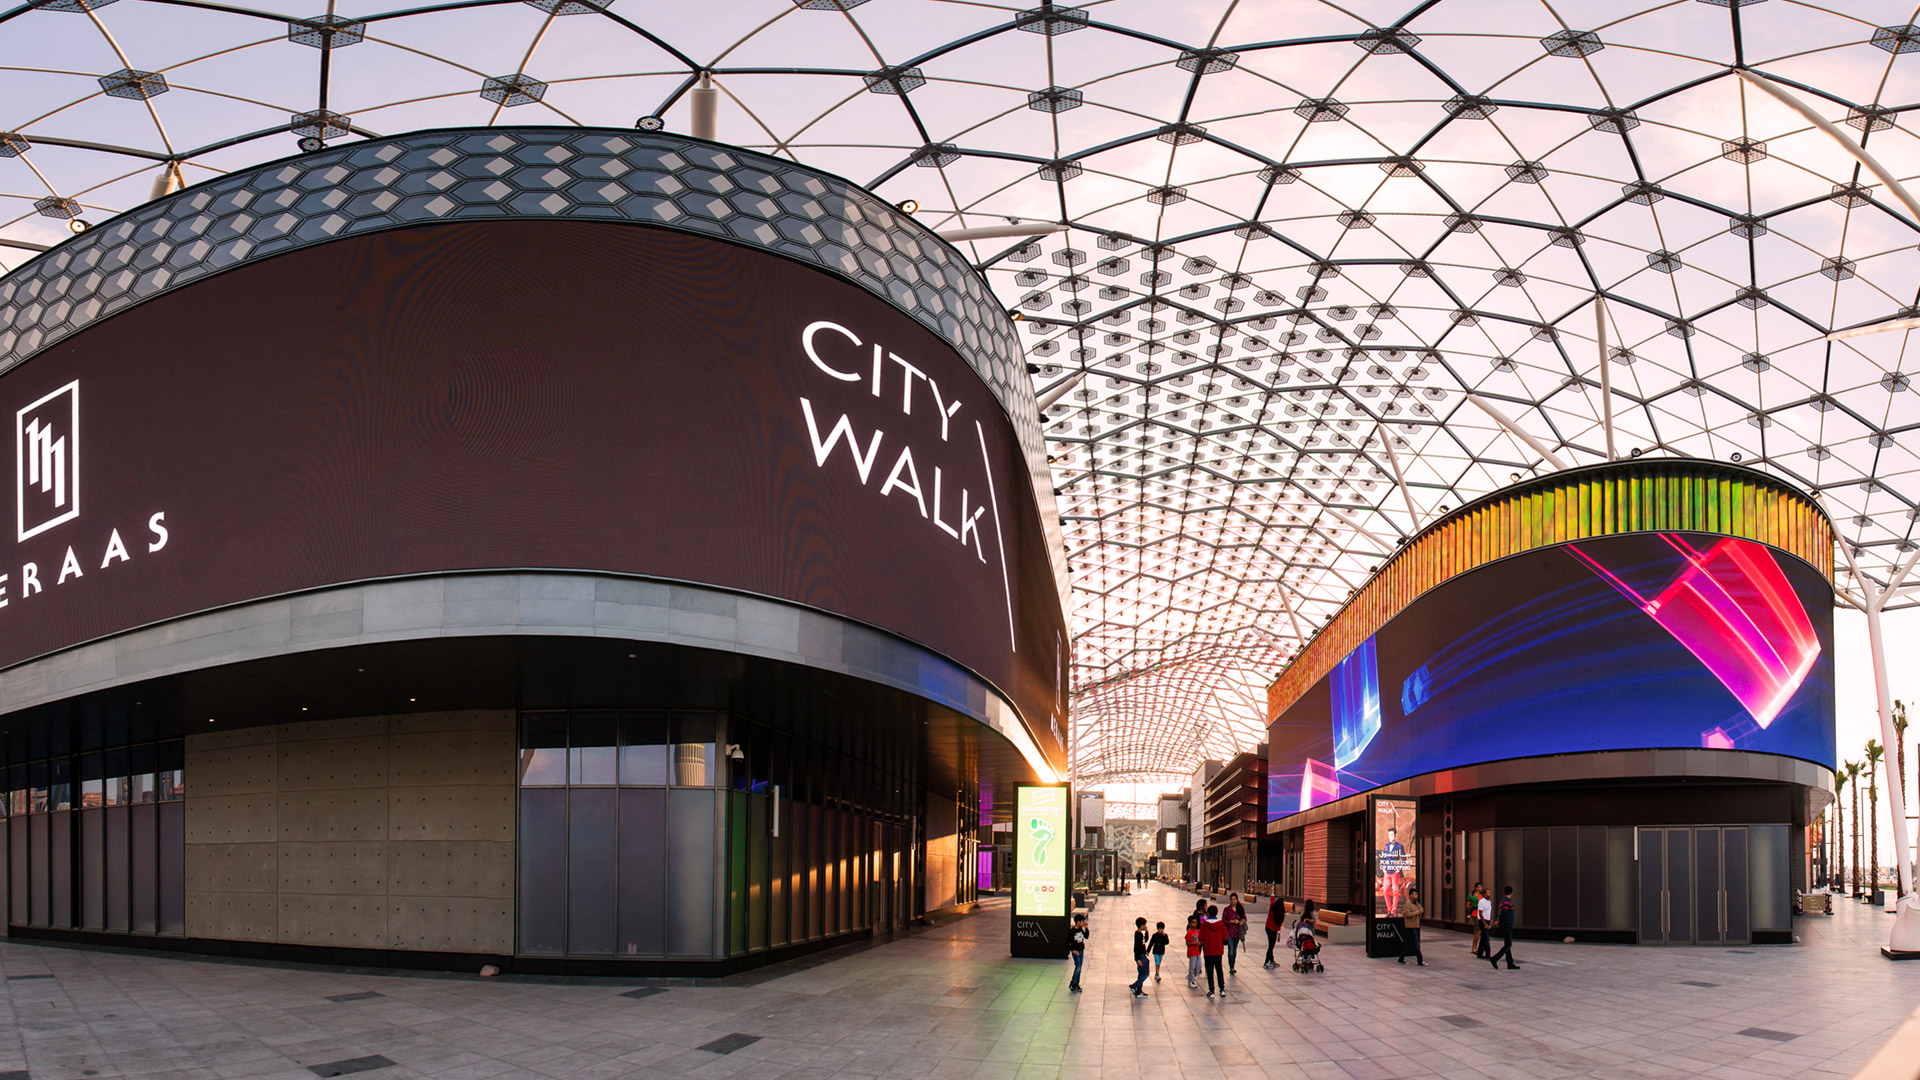 City Walk Mall advertising - Circuit B